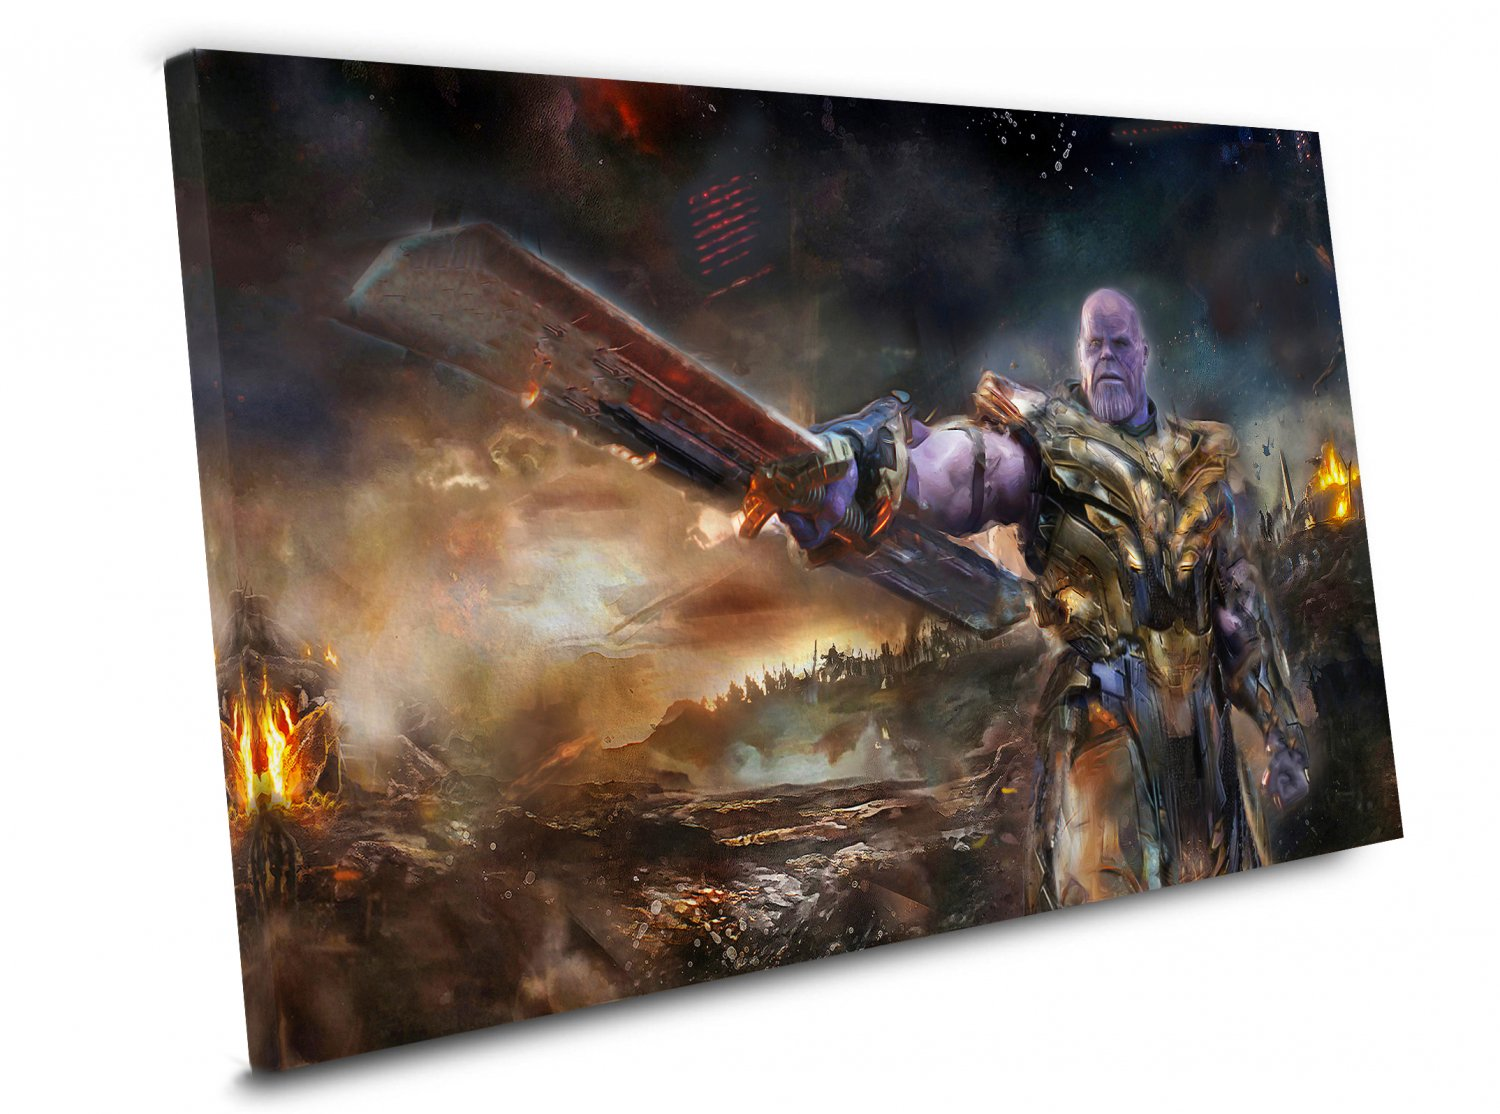 Avengers Endgame Thanos Army  16x24 inches Stretched Canvas